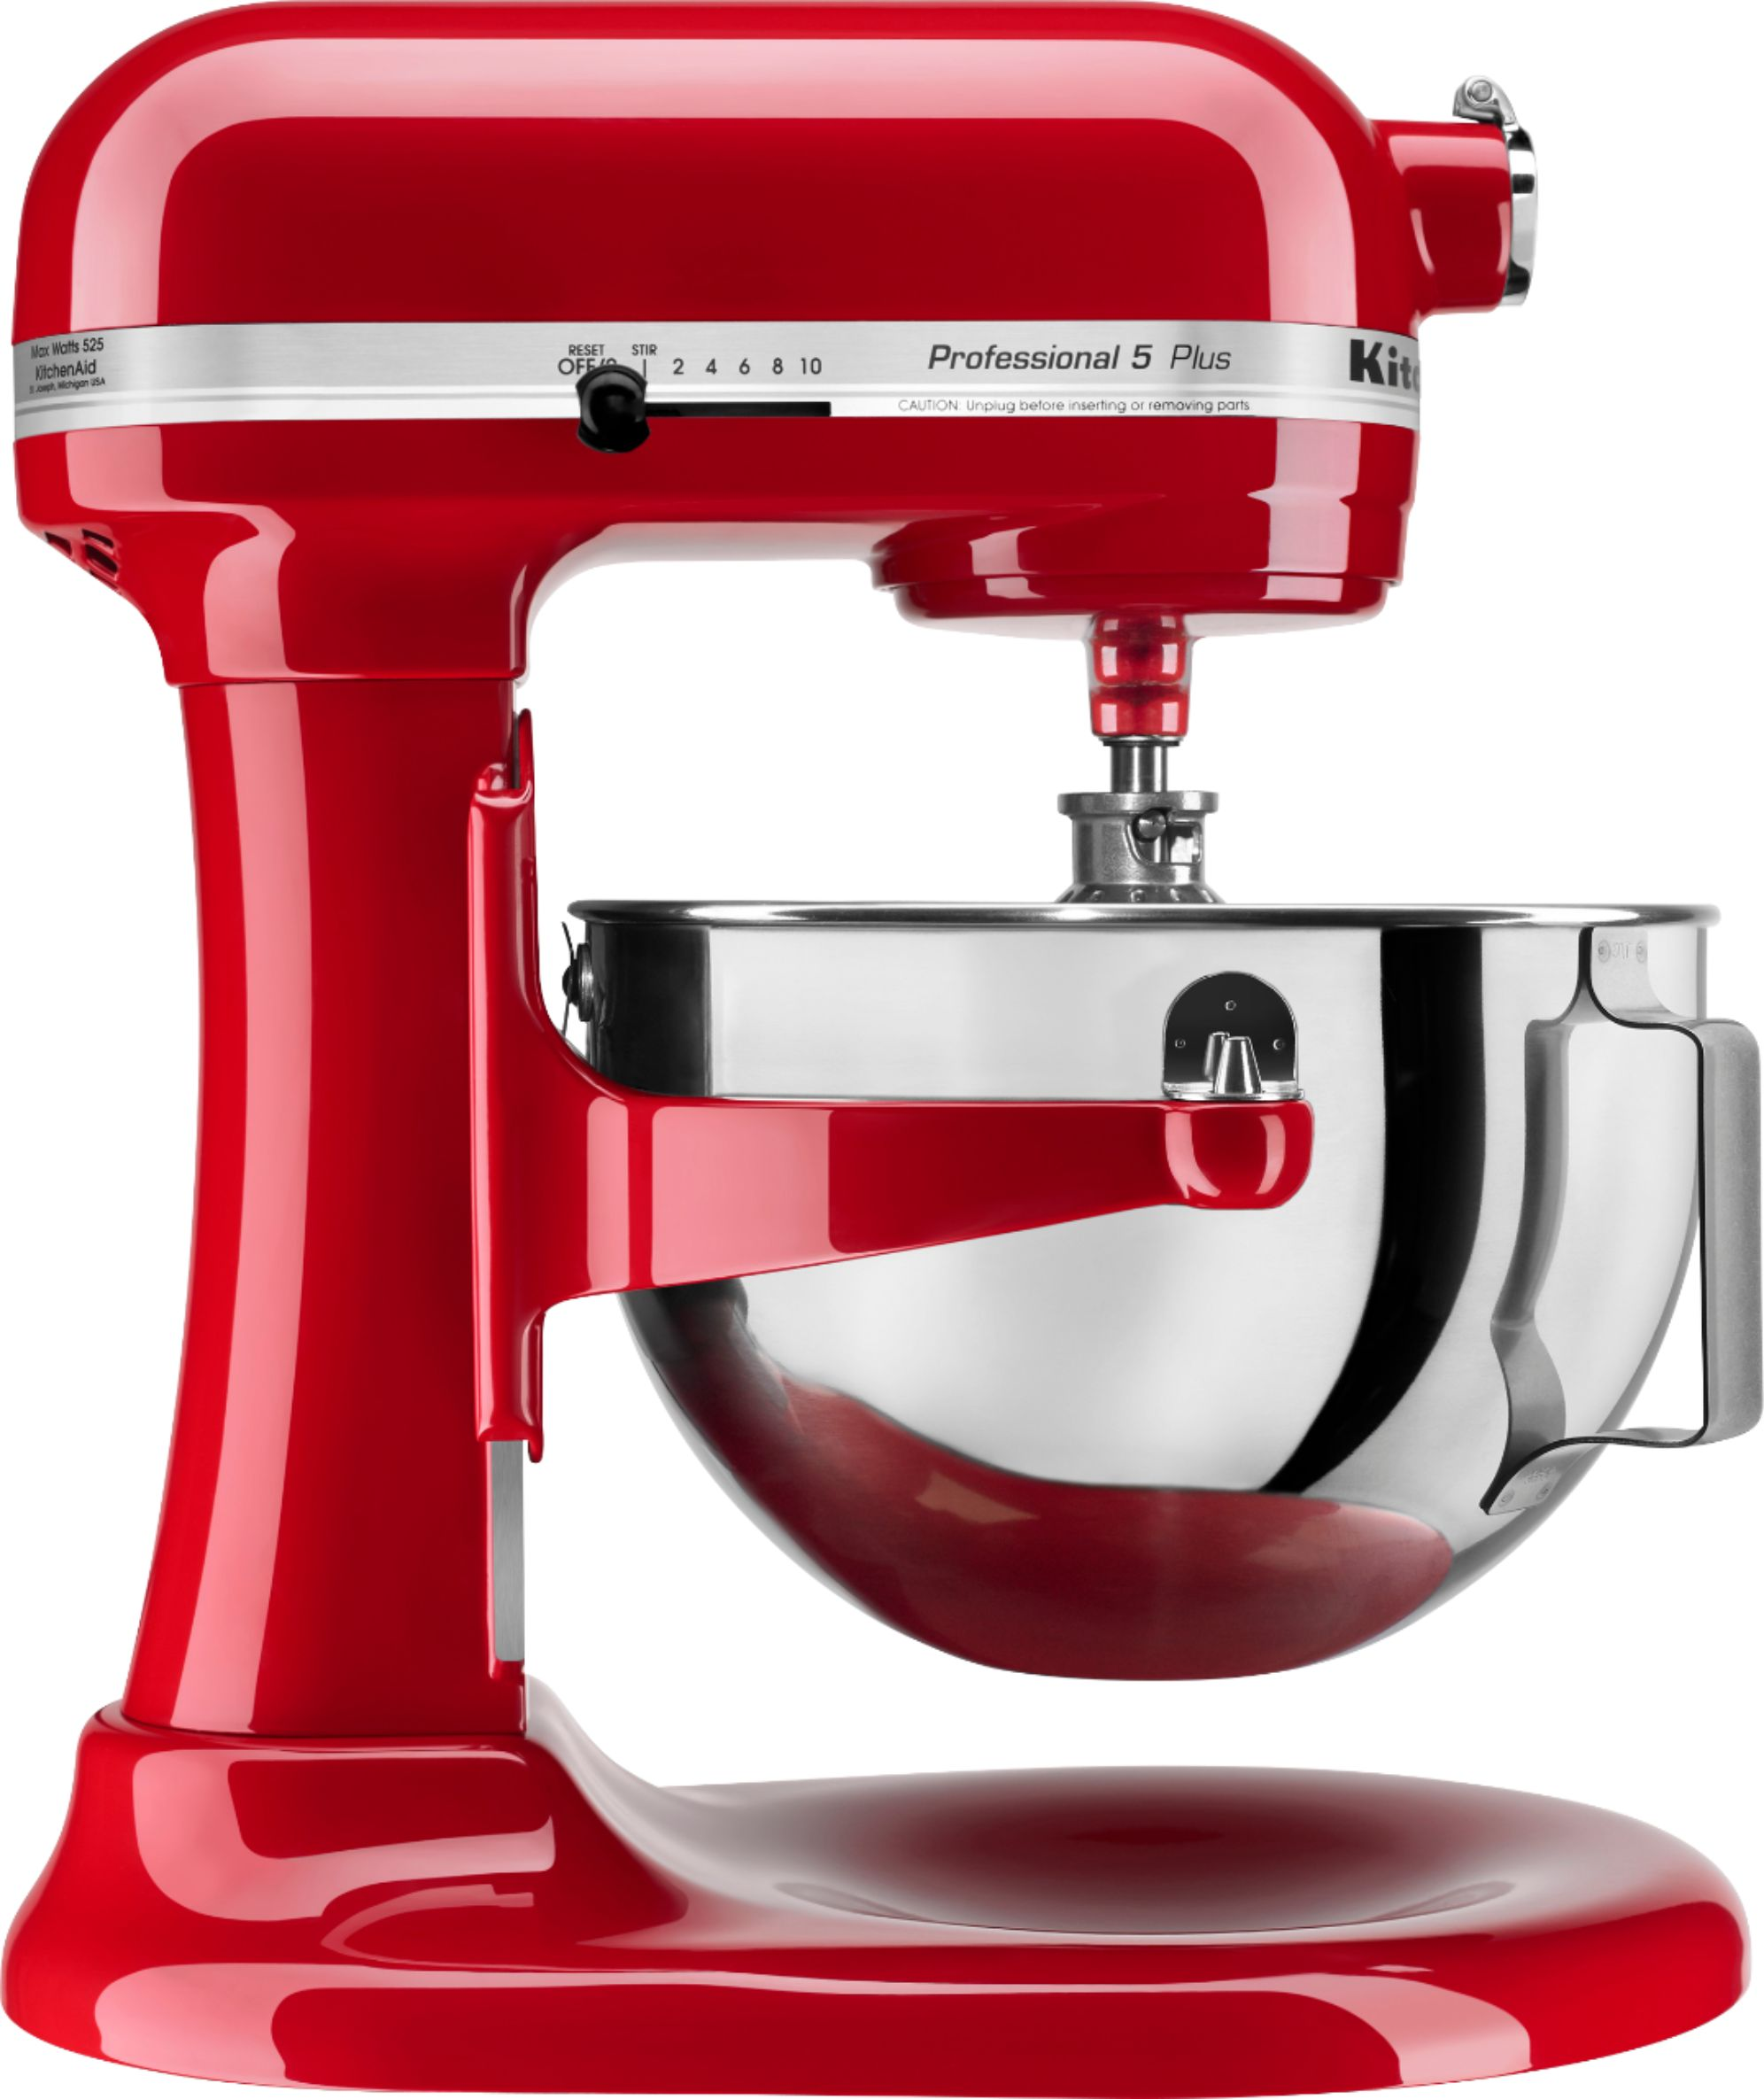 kitchenaid kv25g0xer professional 500 series stand mixer empire red angle zoom